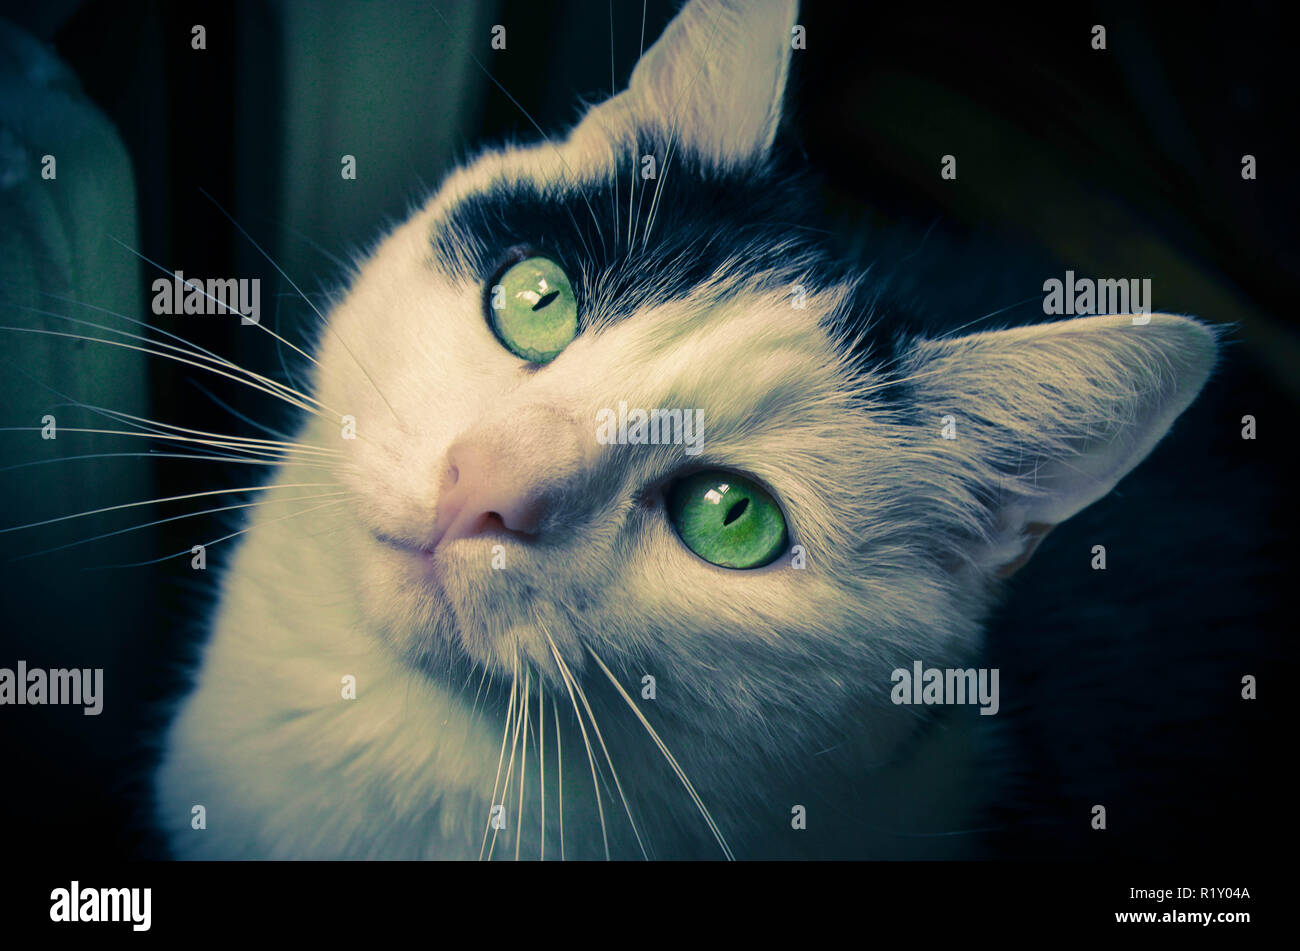 Black and white cat focus on eyes - Stock Image